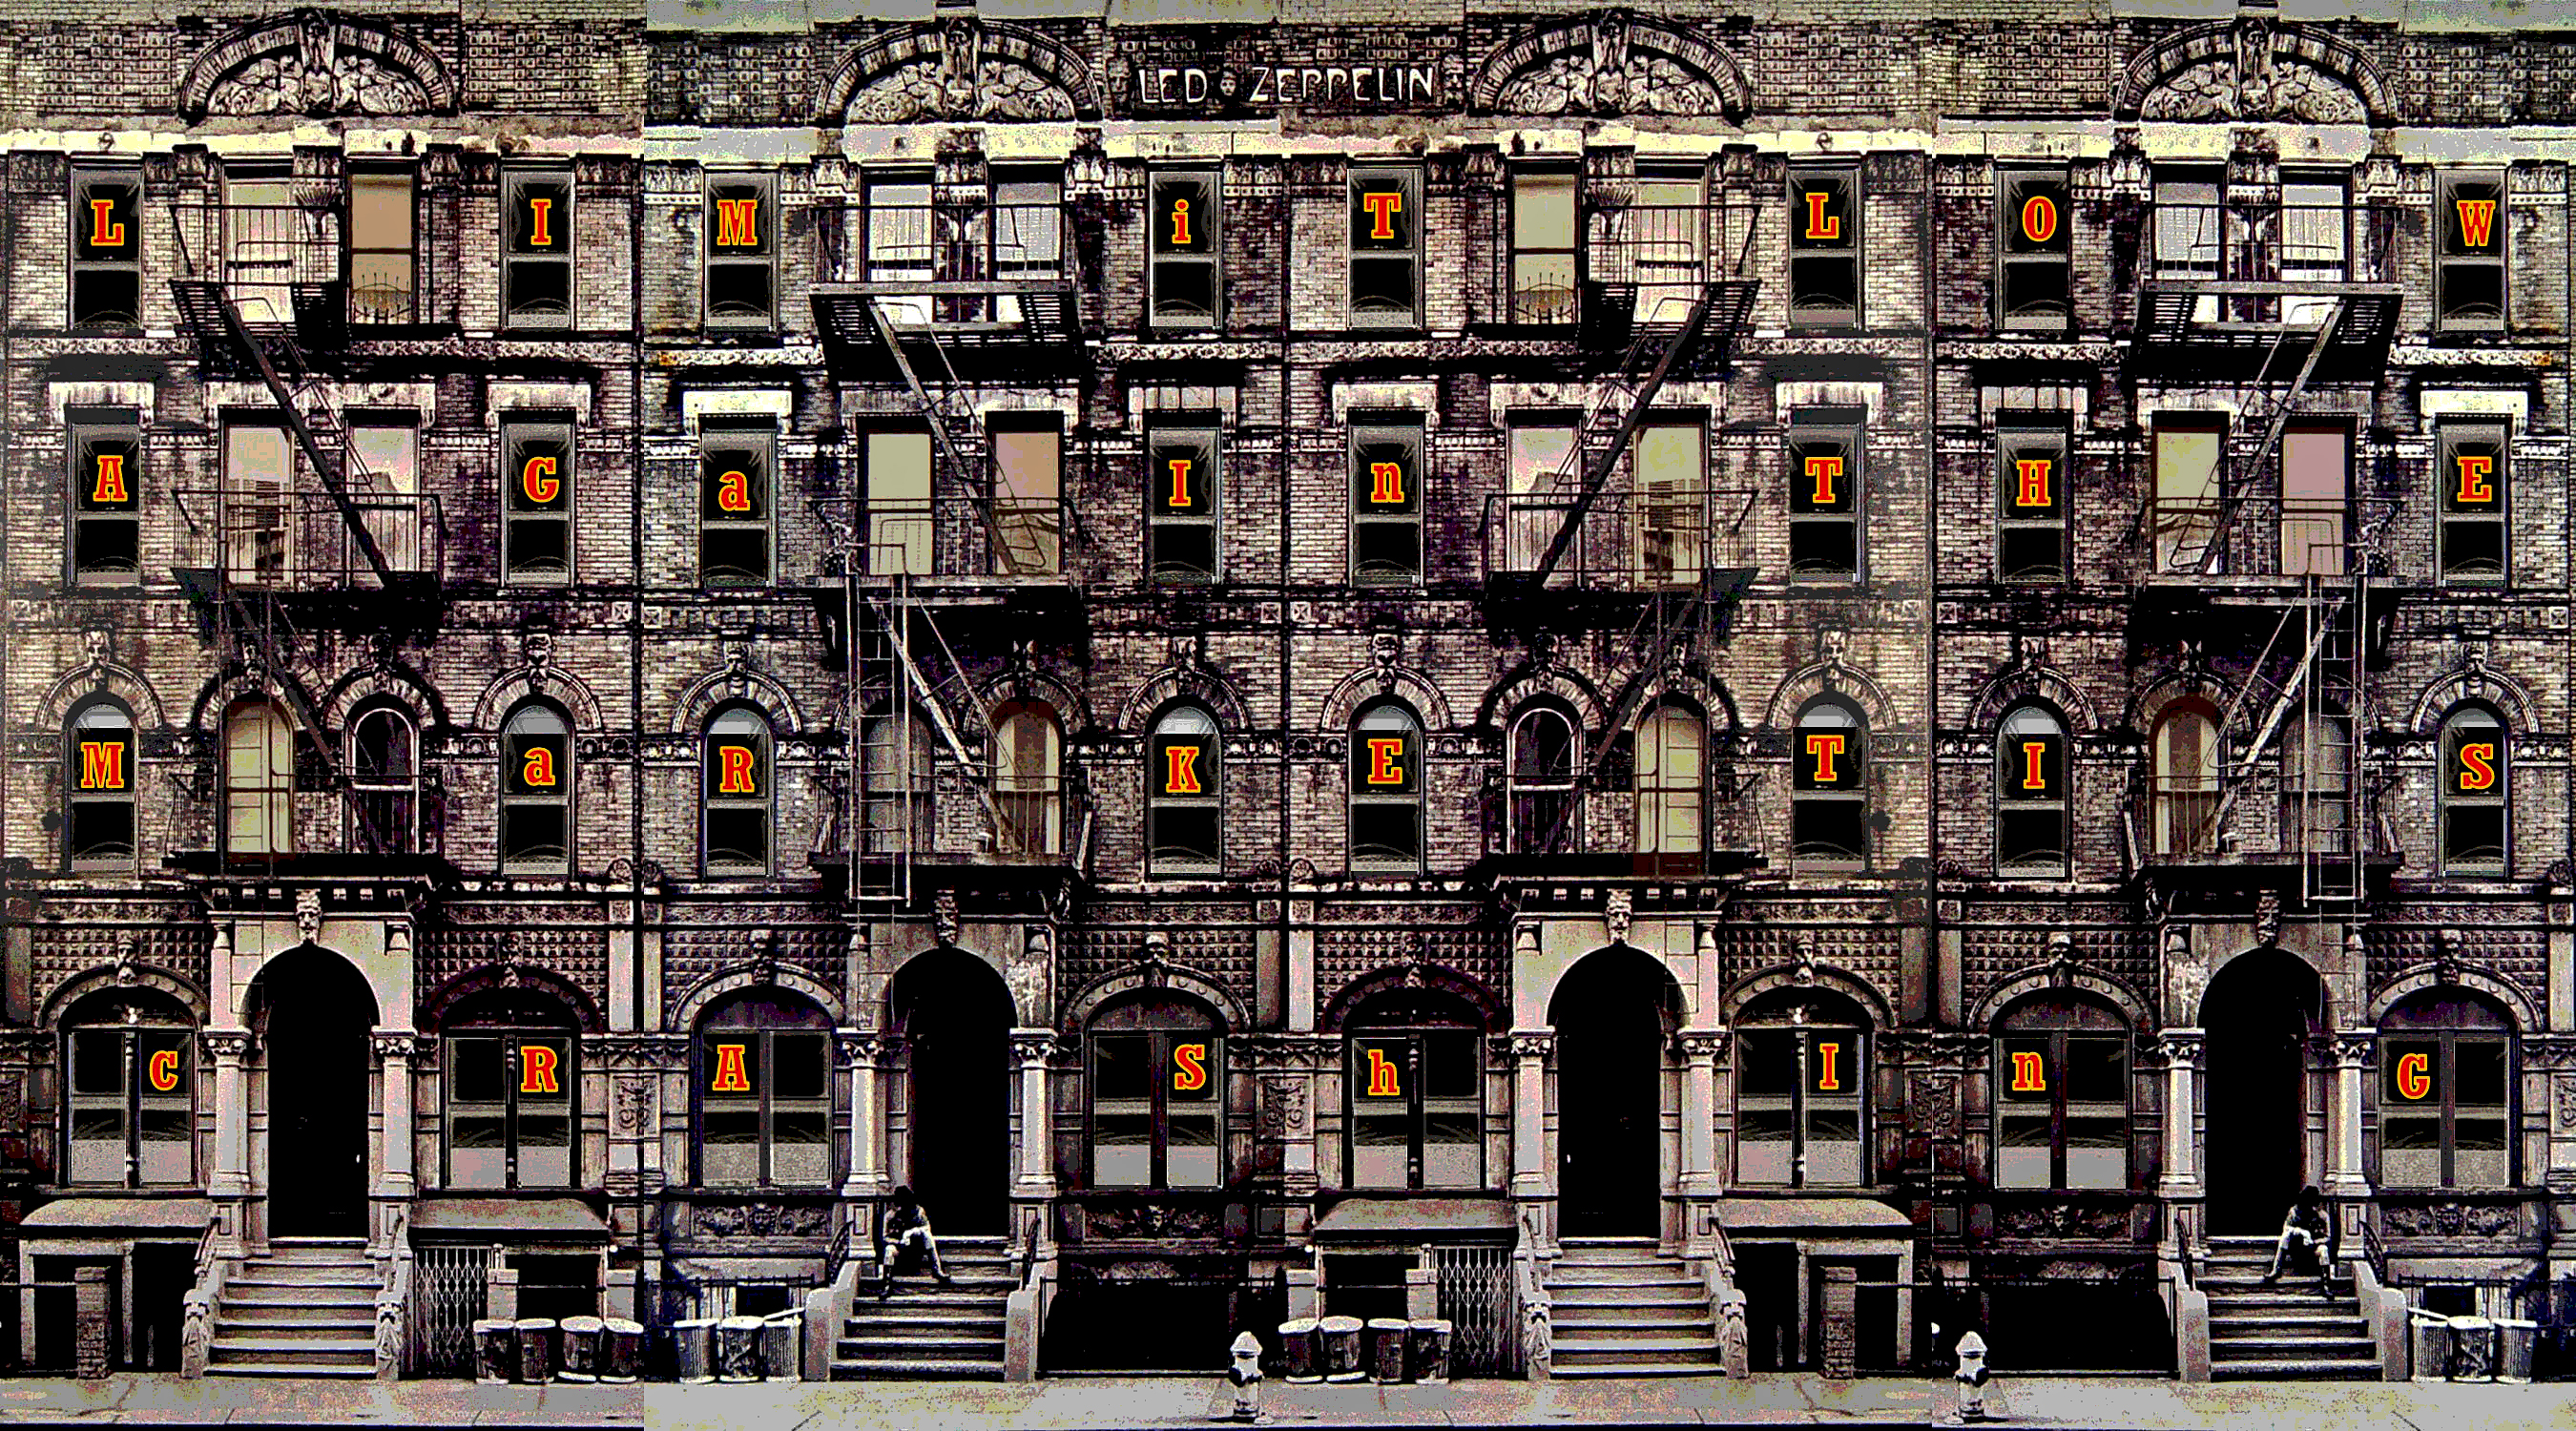 0037 - Led Zeppelin - Physical Graffiti by sunsetcolors on ...